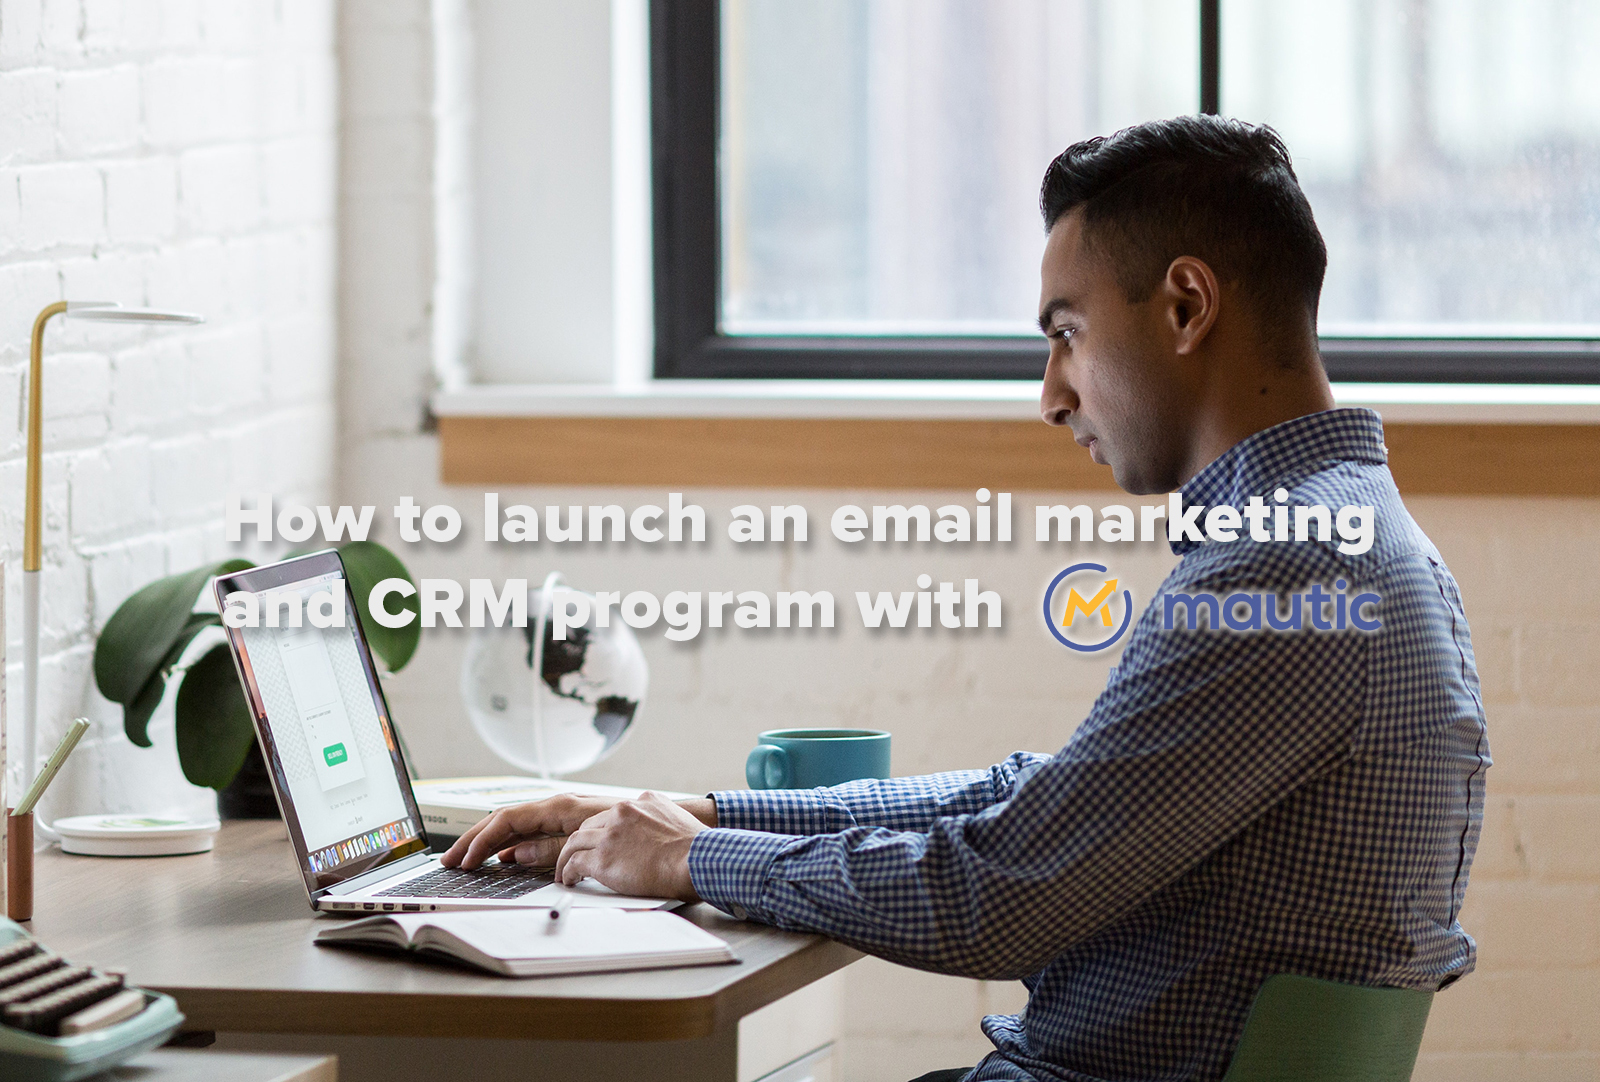 Here's how to launch an email marketing and CRM program with Mautic